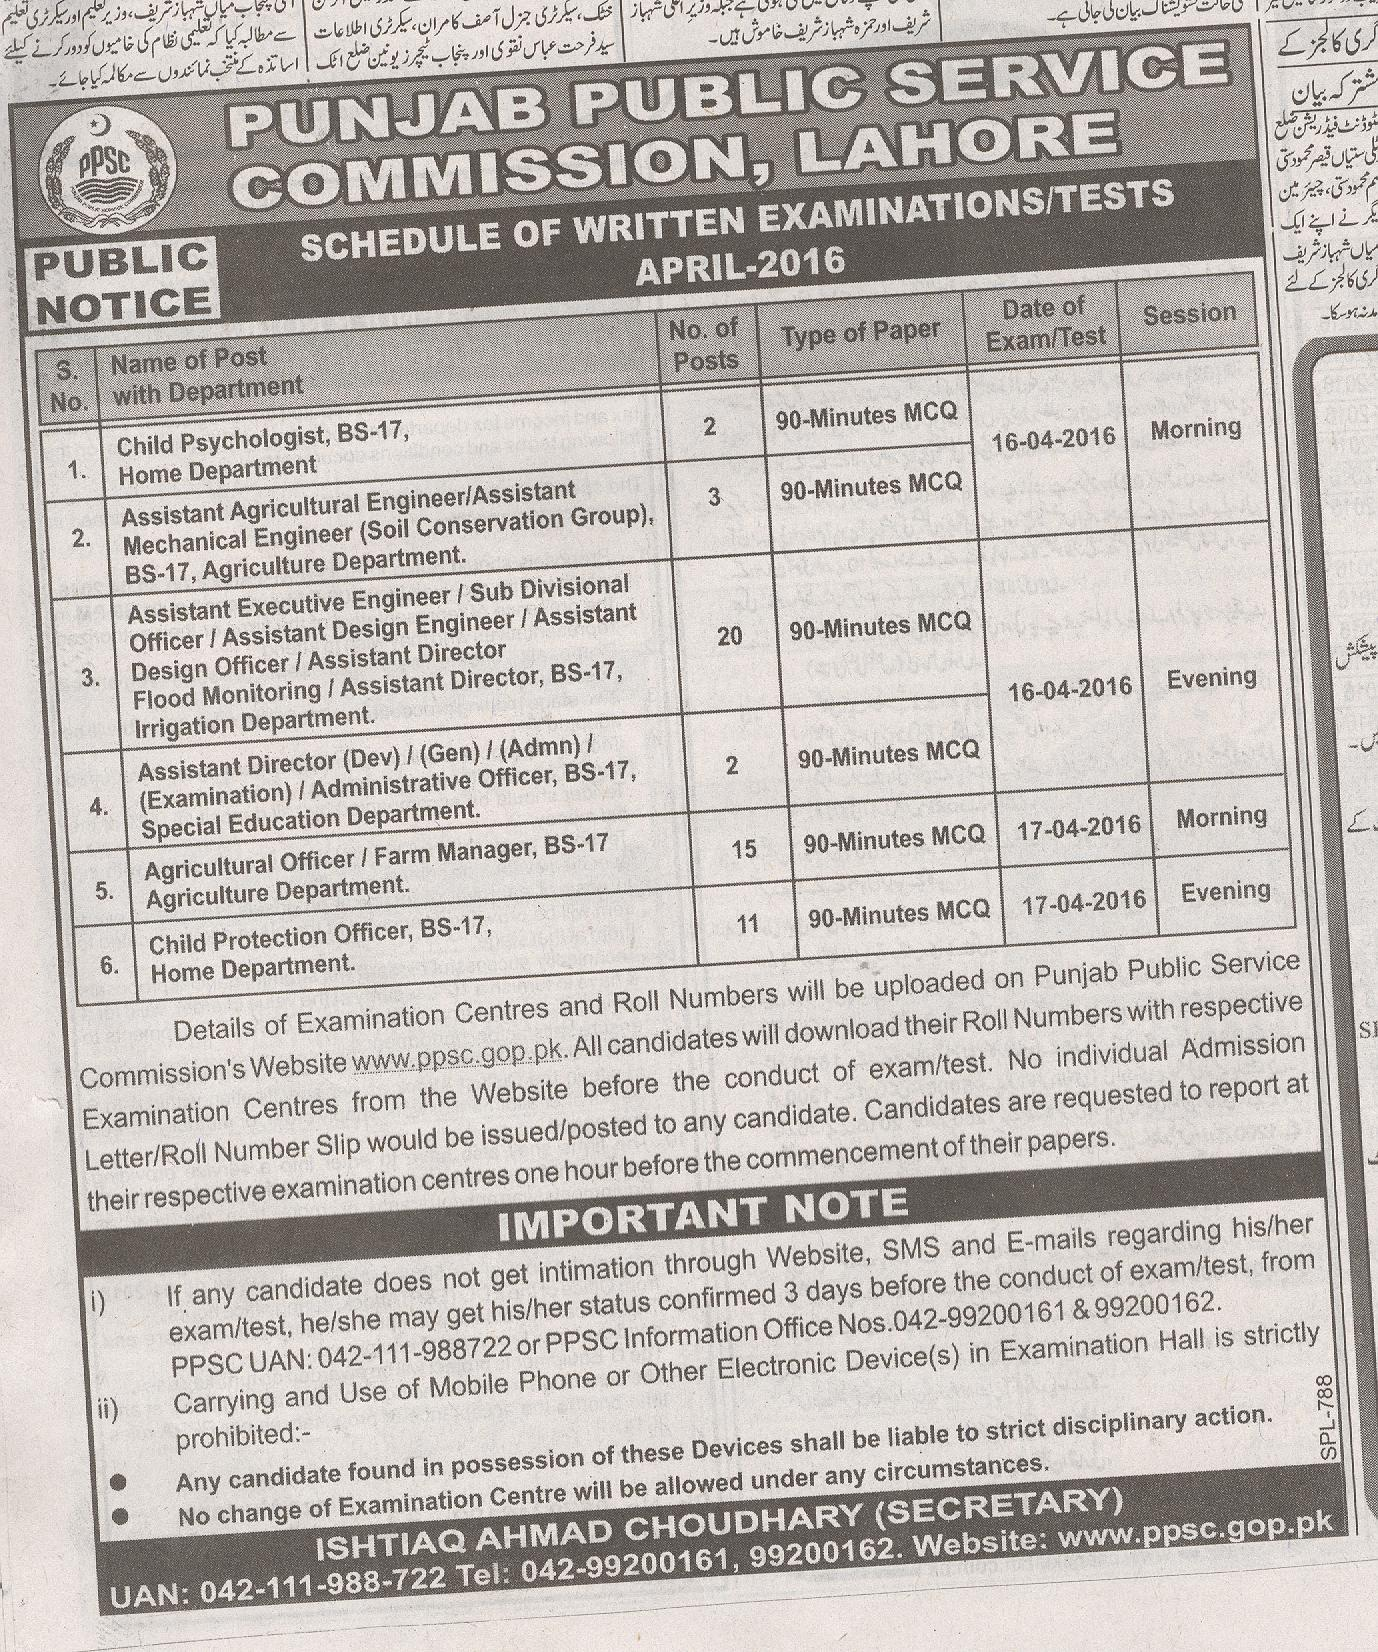 PPSC SCHEDULE OF WRITTEN TESTS Jobs 2016